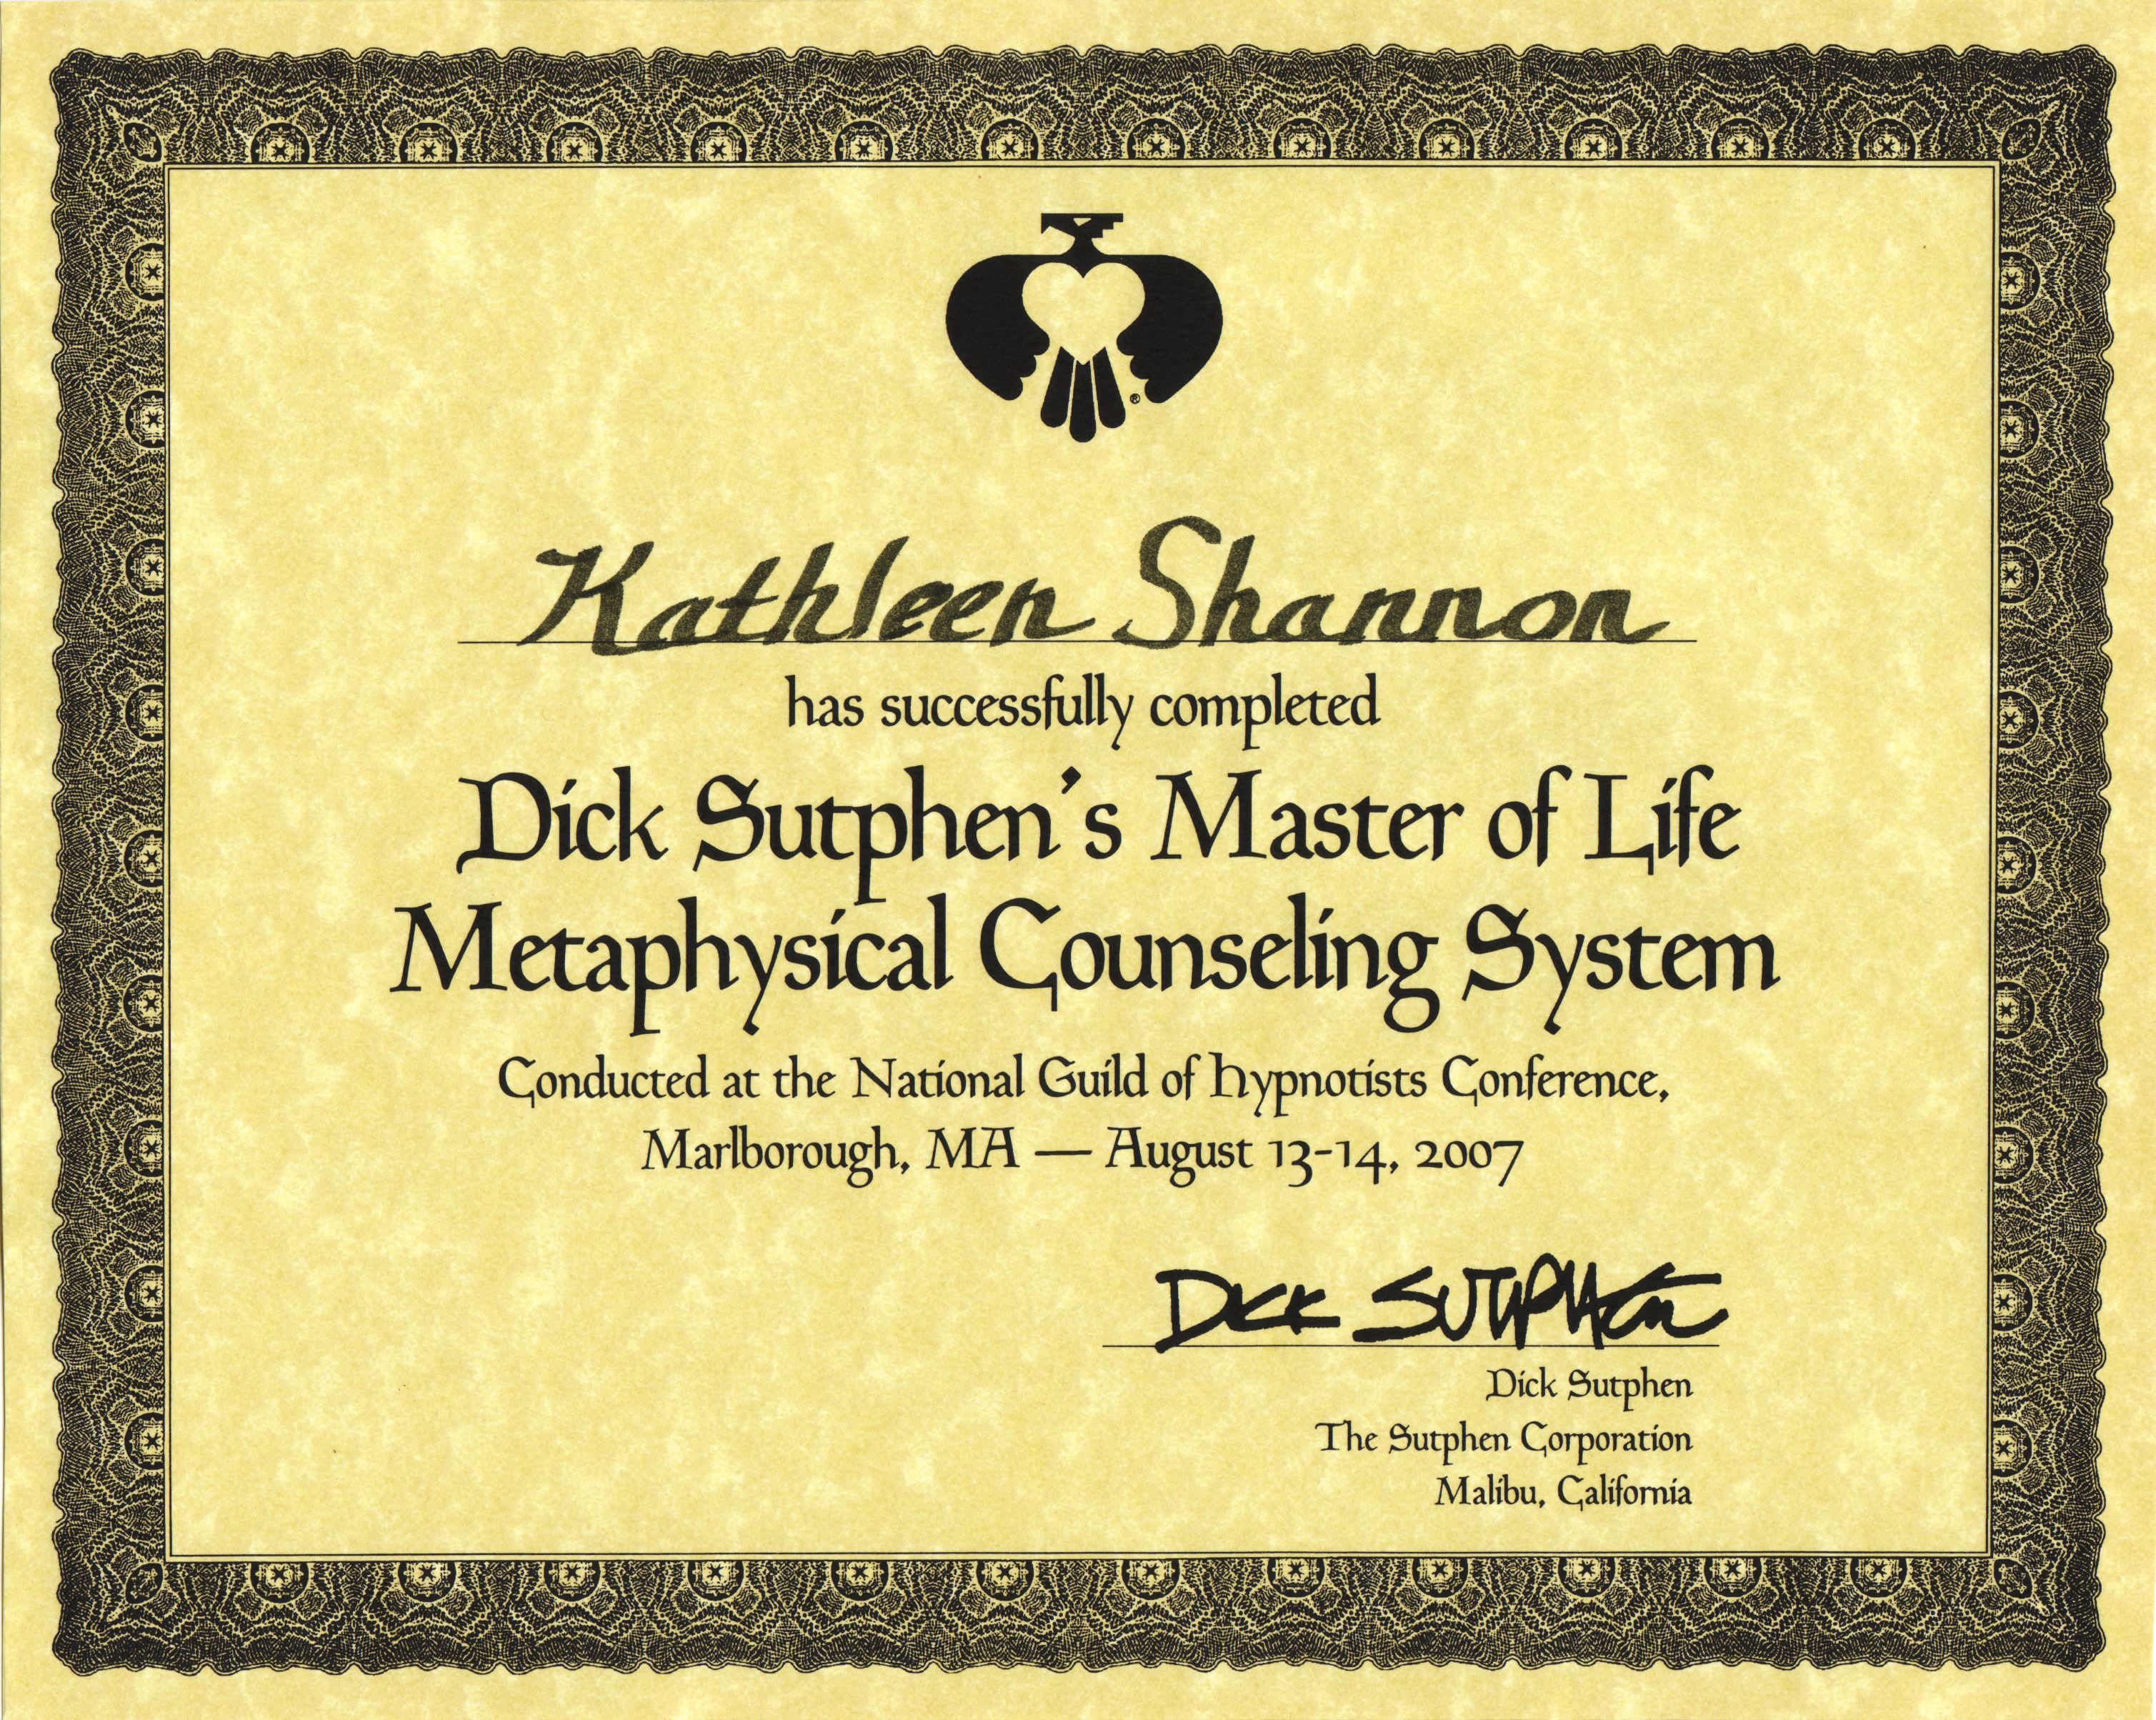 Metaphysical Counseling Certificate